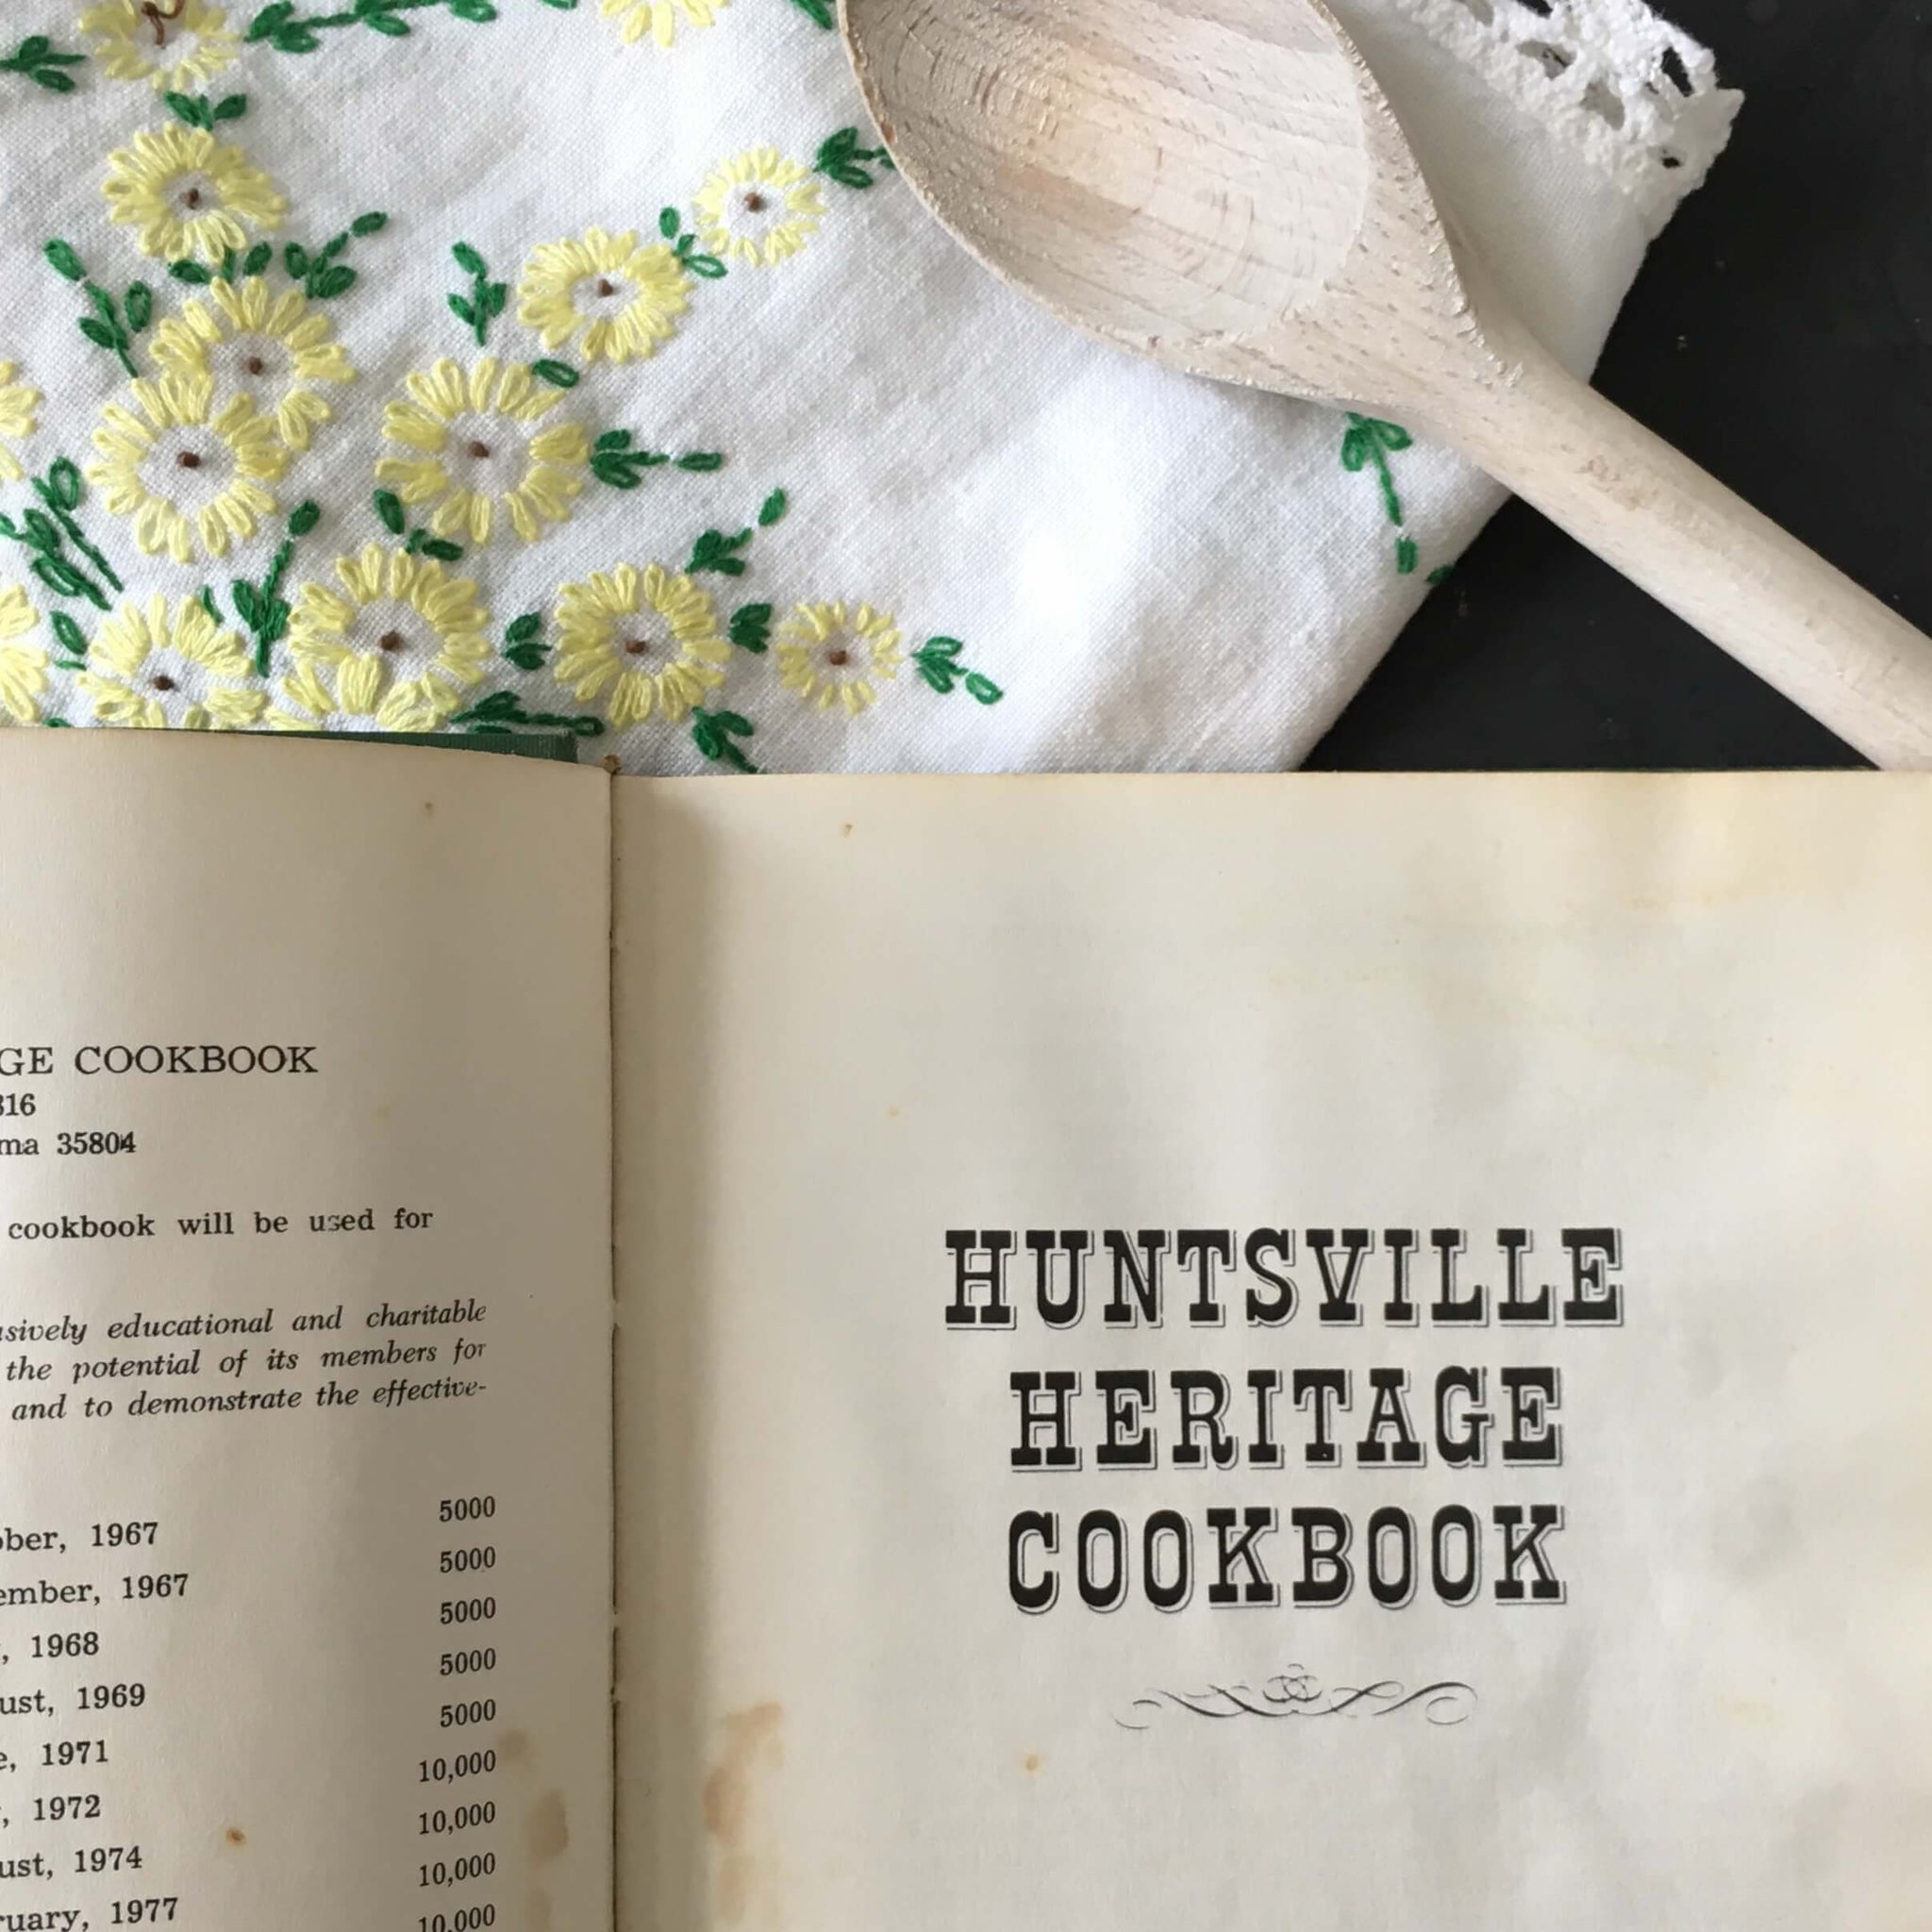 Hunstville Heritage Cookbook - 1981 Edition, 10th Printing - Junior League of Hunstville Alabama